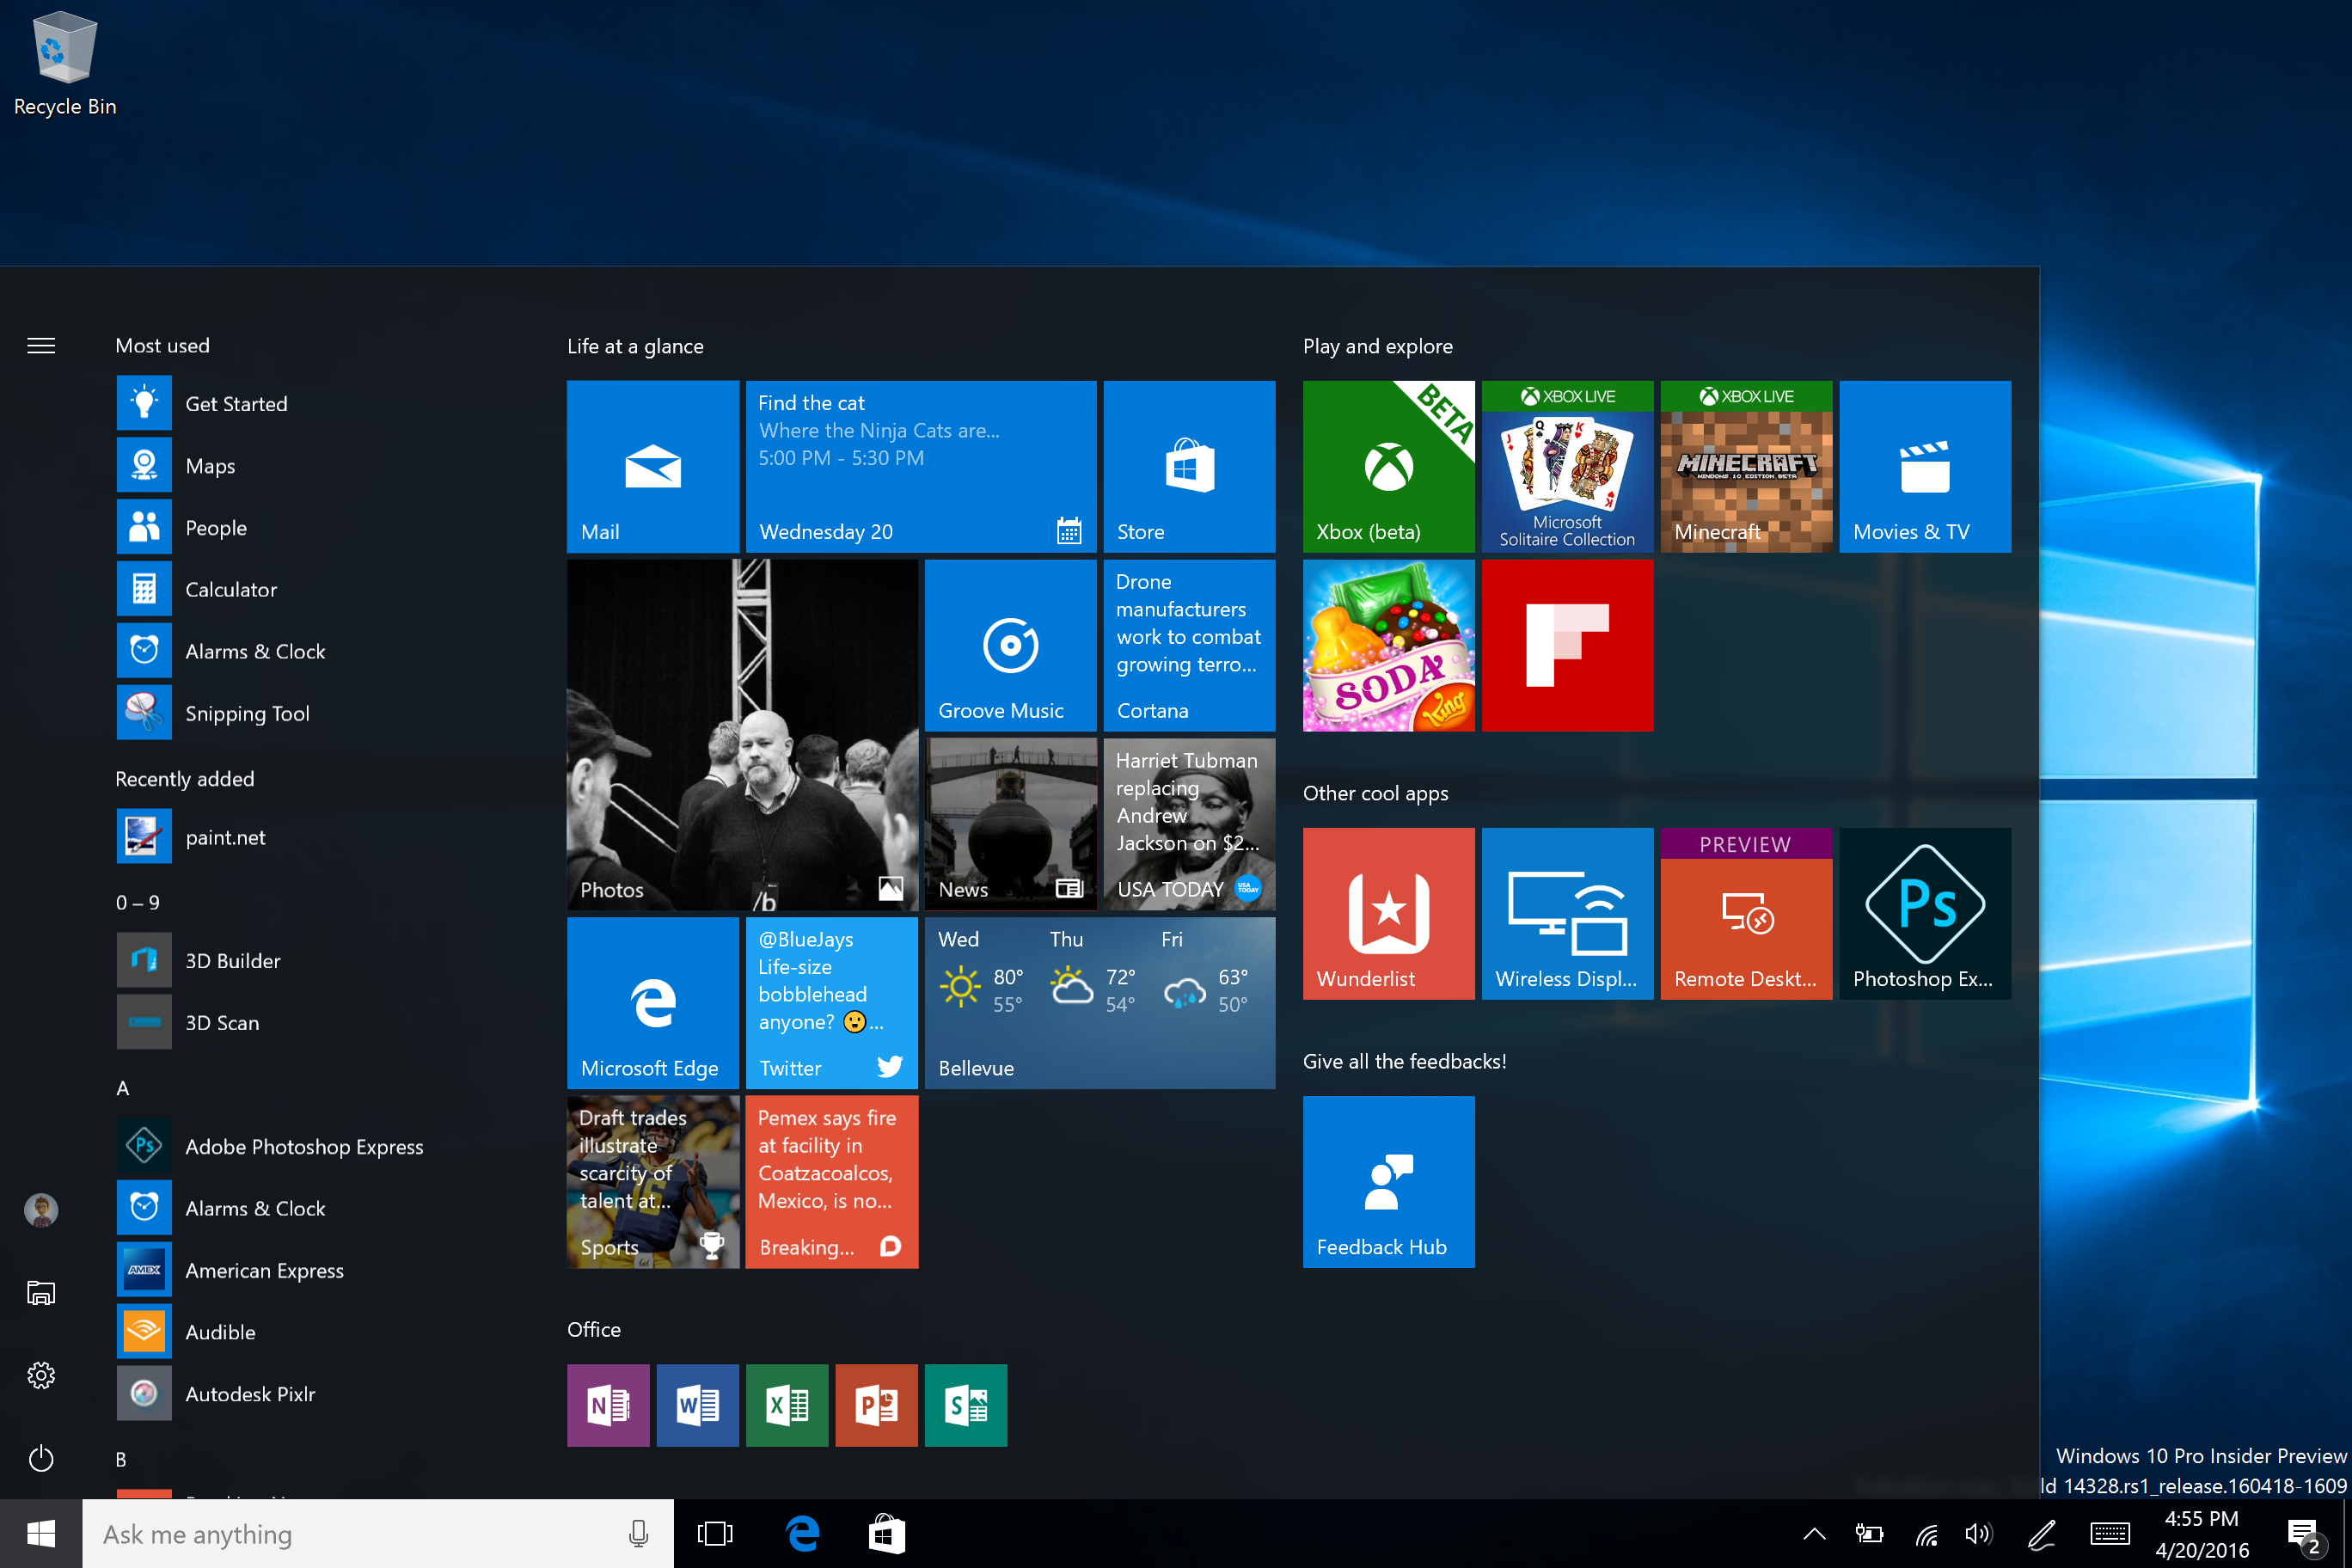 Announcing Windows 10 Insider Preview Build 14328 for PC and